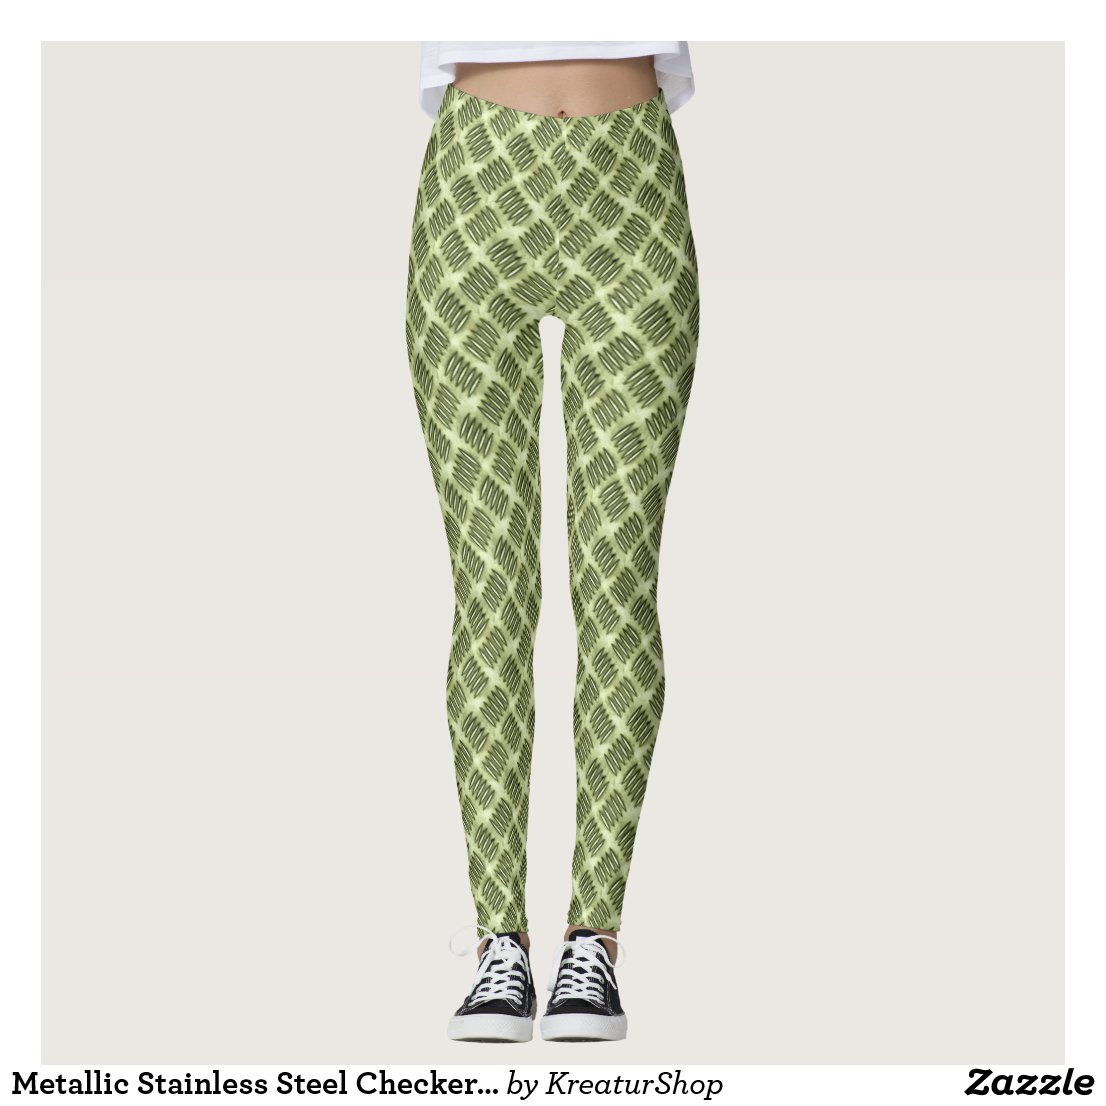 Metallic Stainless Steel Checkered Board